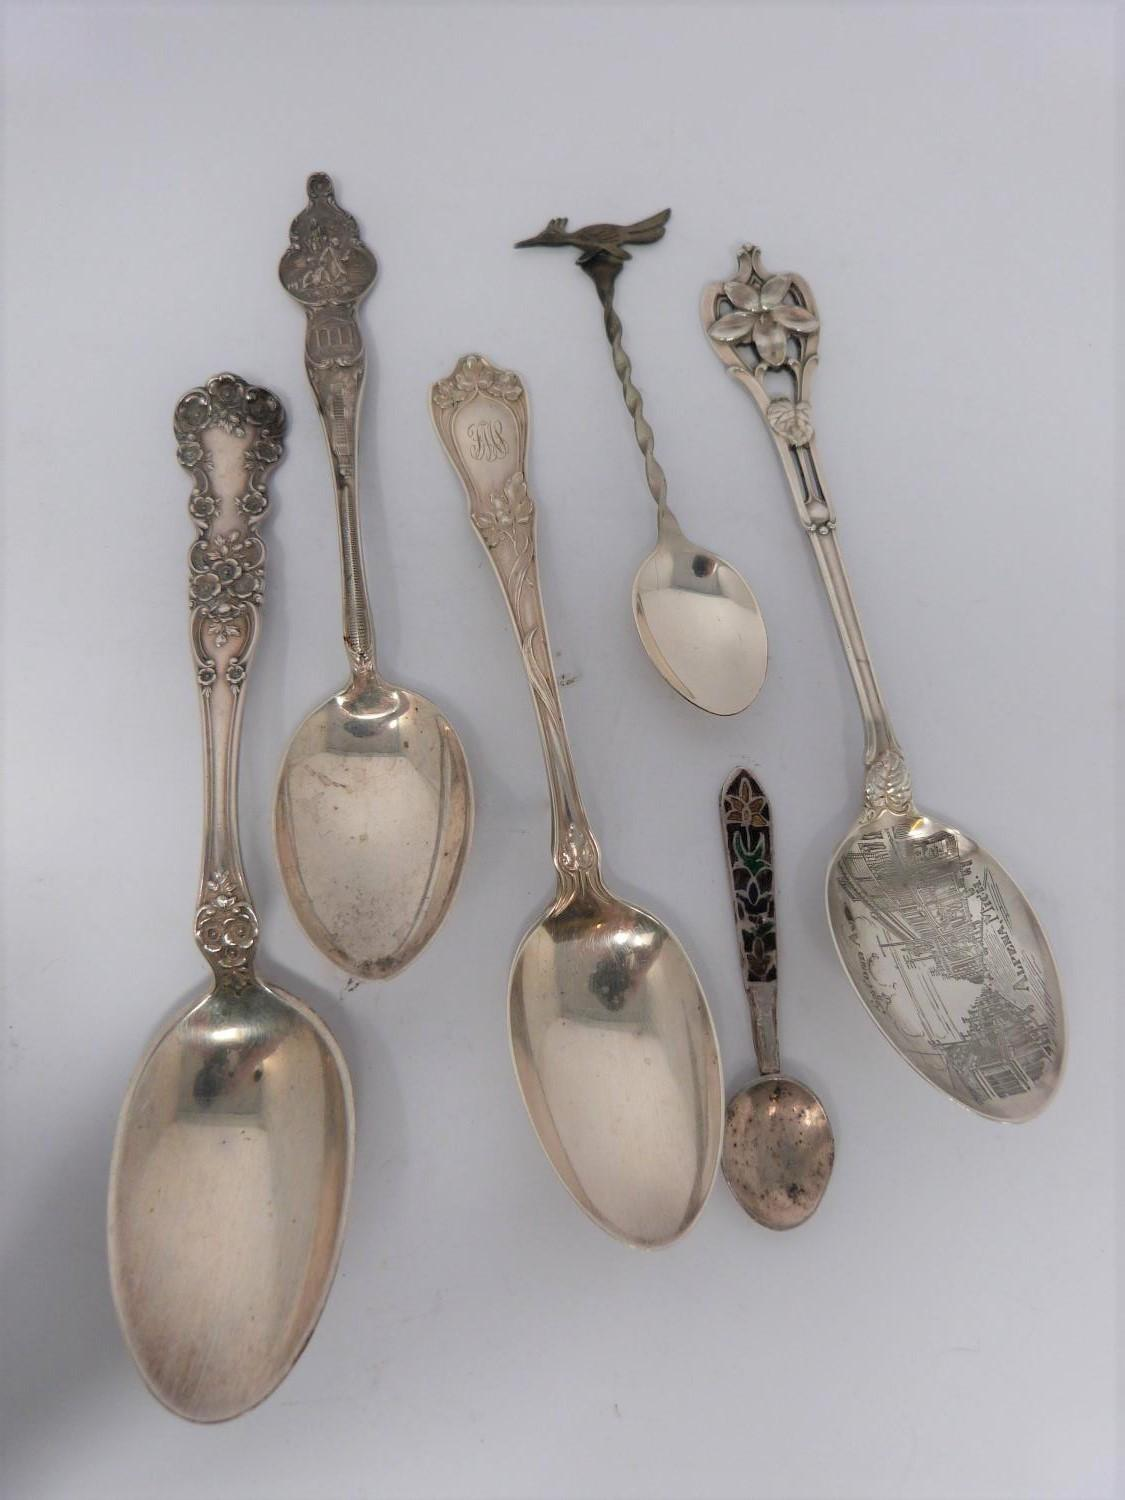 A collection of silver spoons, including tourist and collector's spoons. (411g). - Image 6 of 6